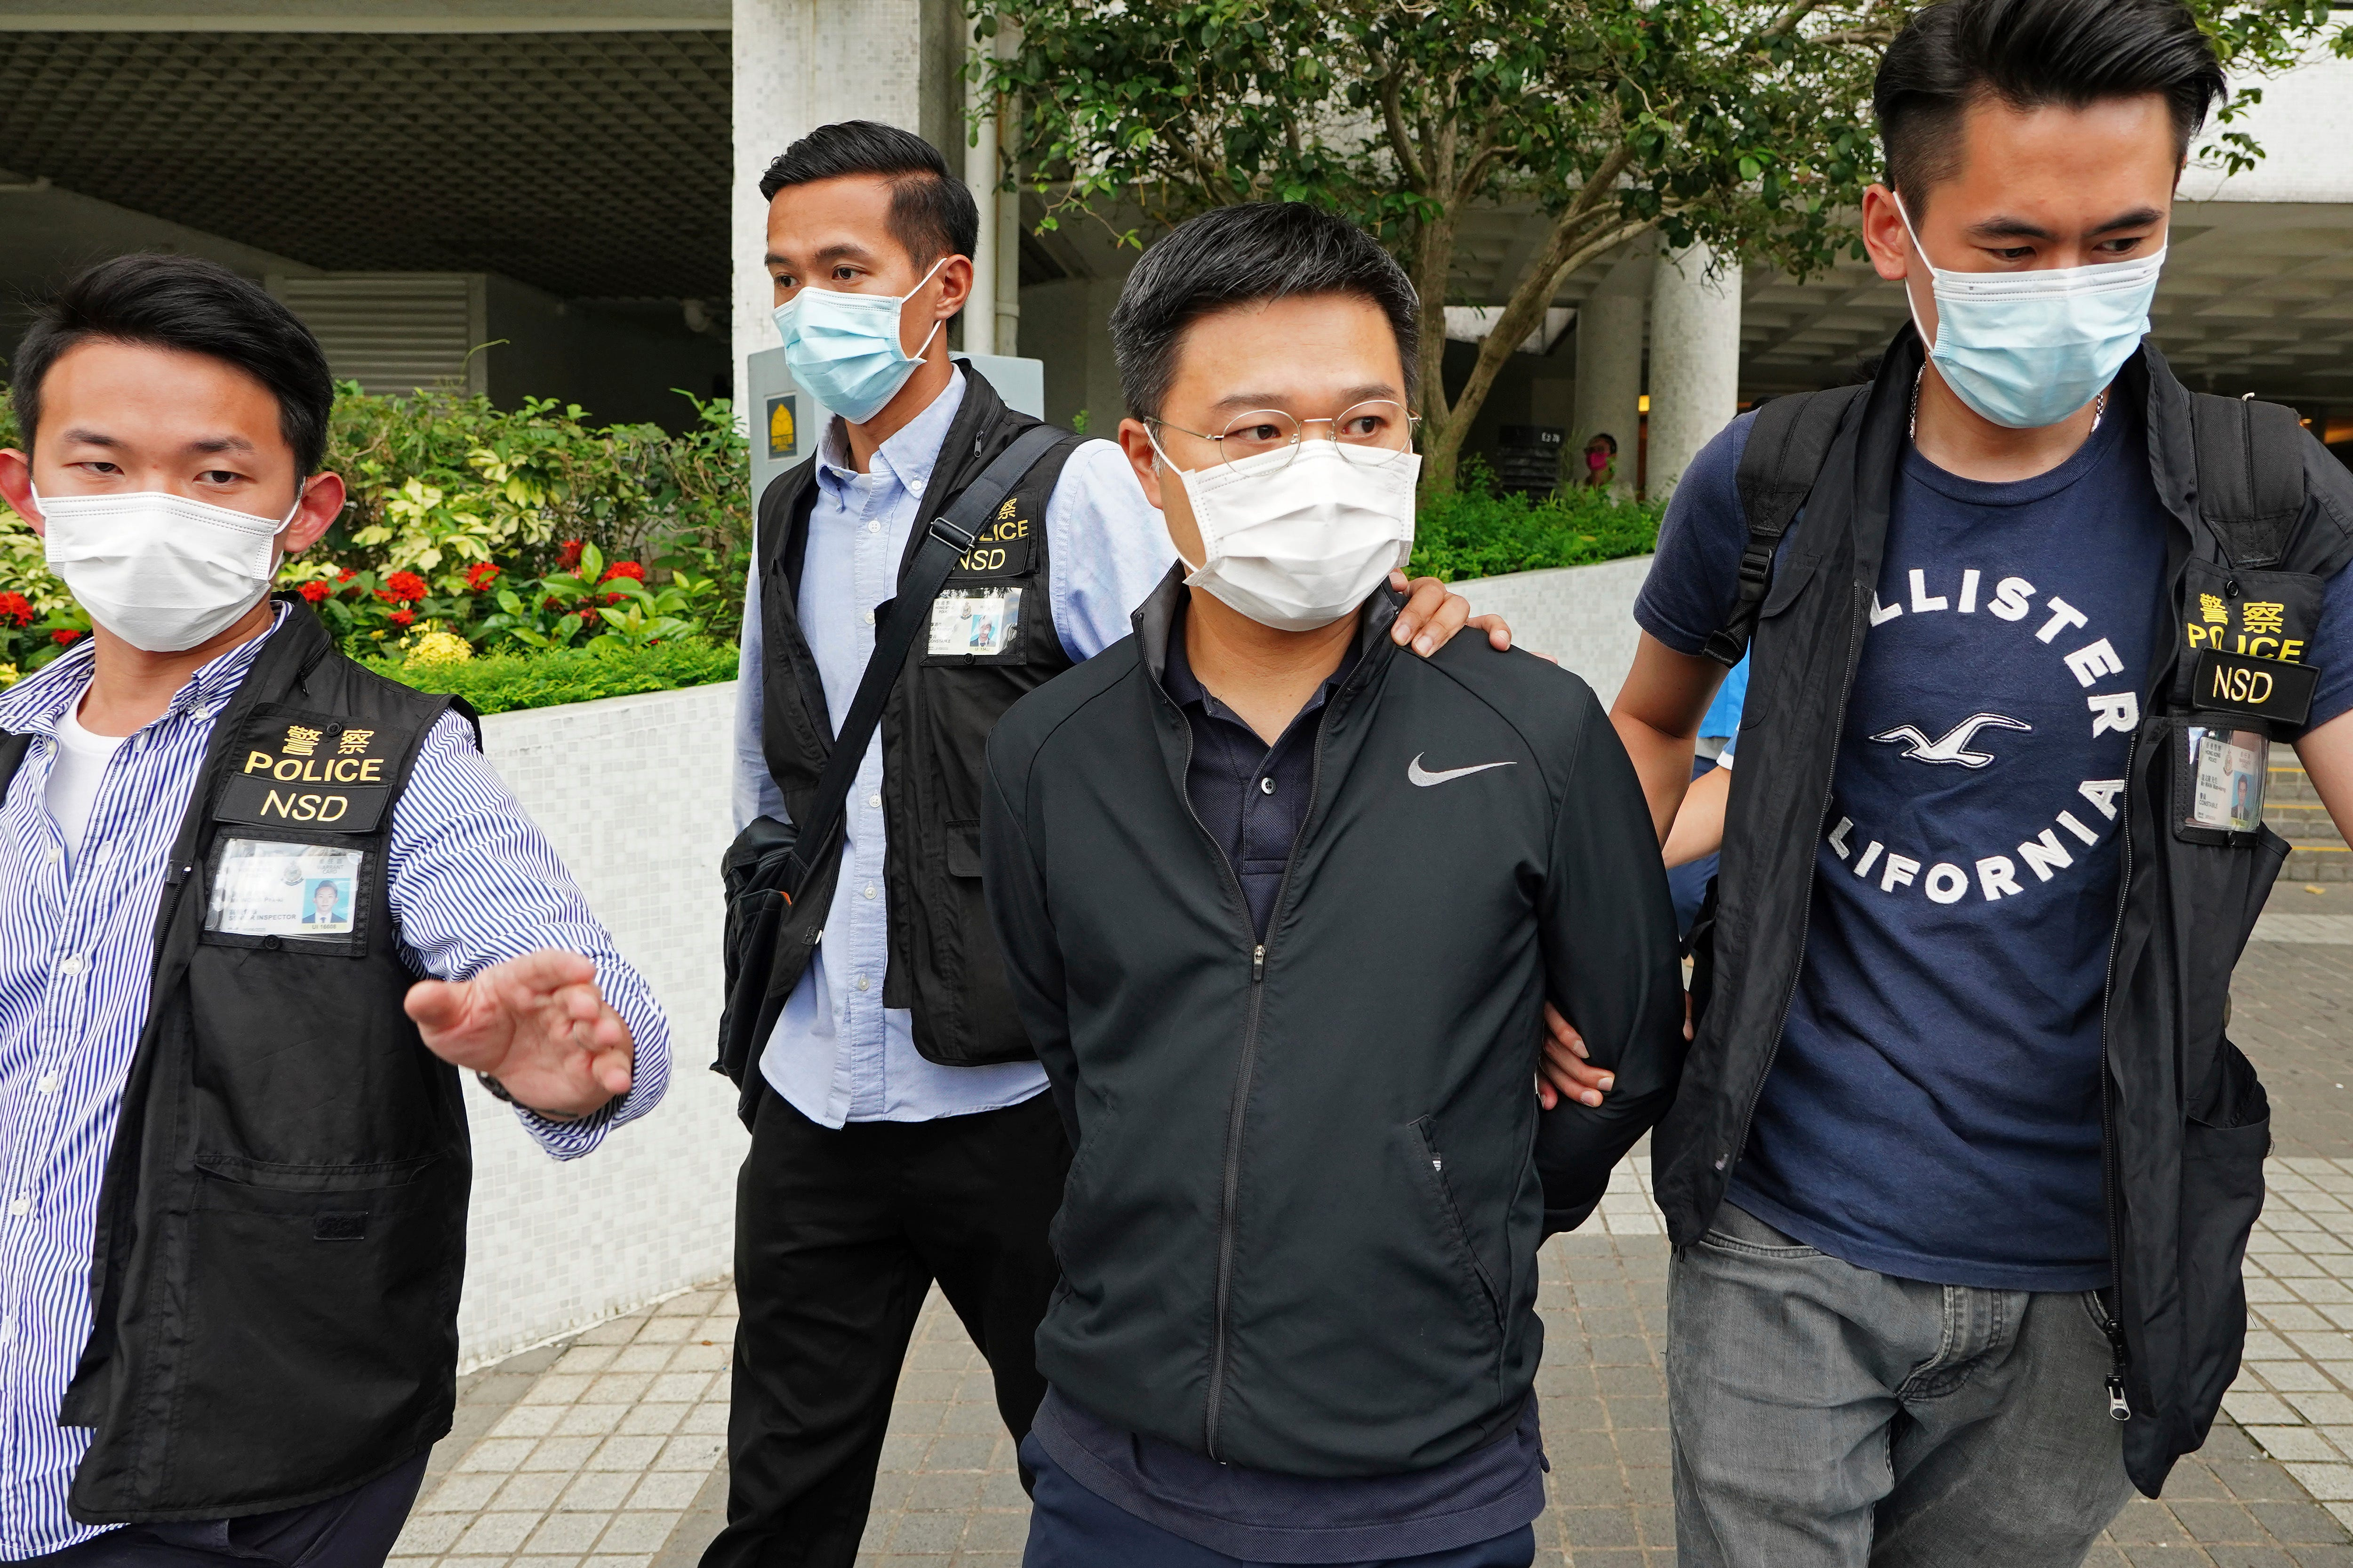 Apple Daily editors arrested under Hong Kong security law 2